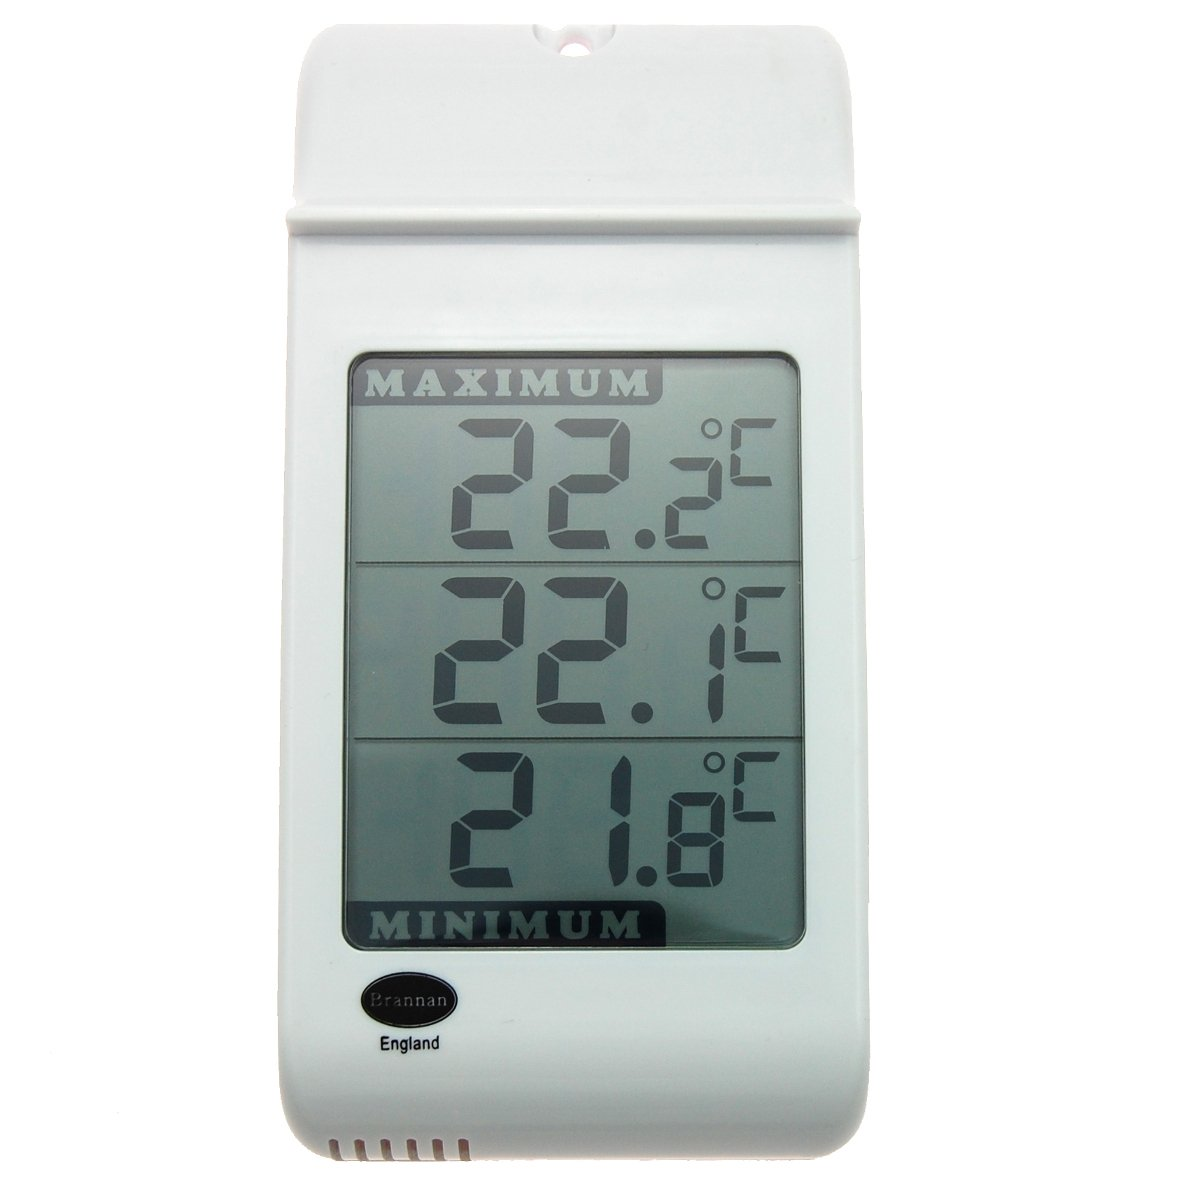 Brannan Large Digital Max Min Thermometer in White - Indoor Outdoor Garden Greenhouse Wall 810-100